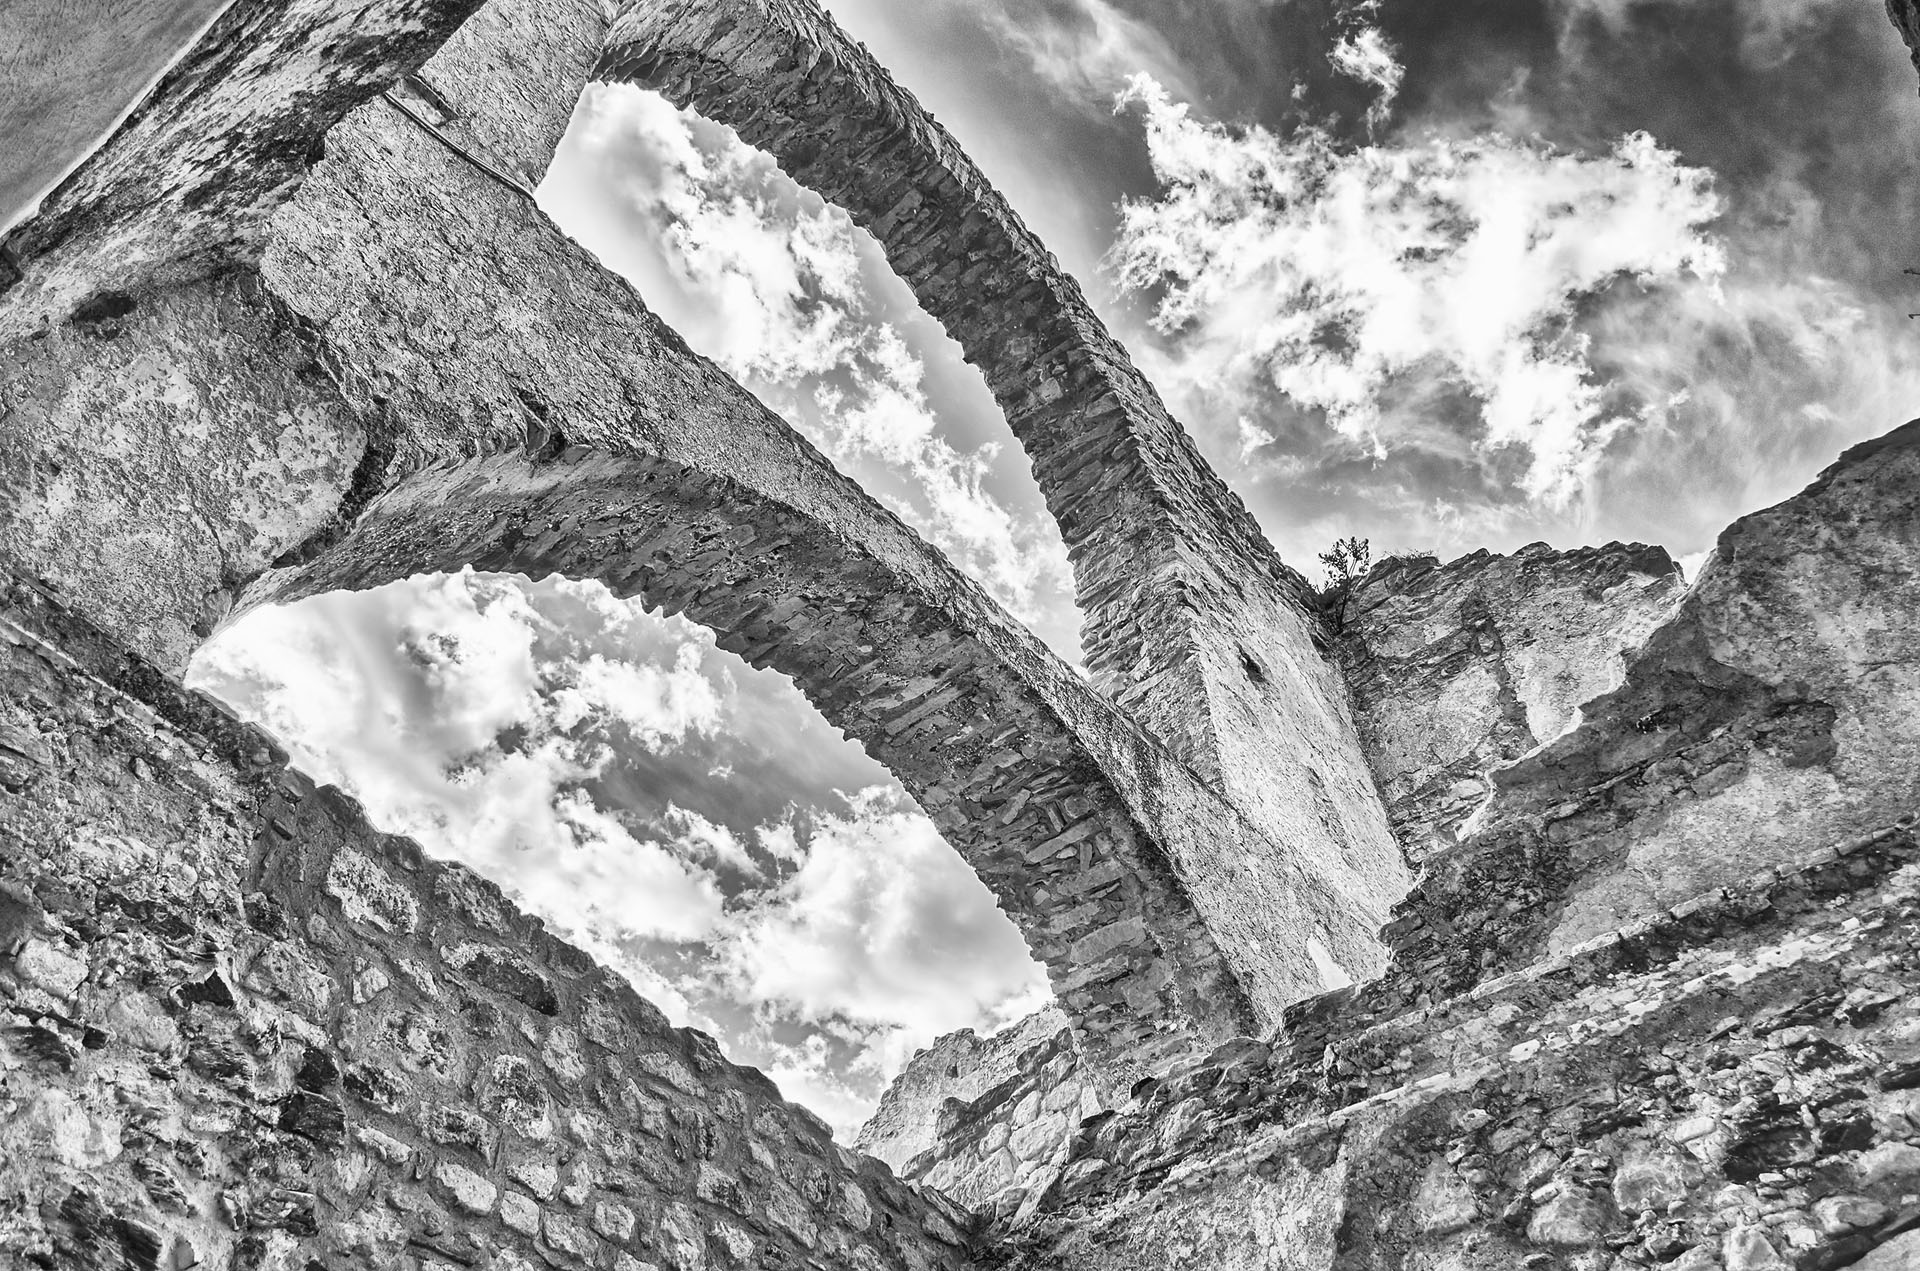 Ruins of an old castle in south of Italy